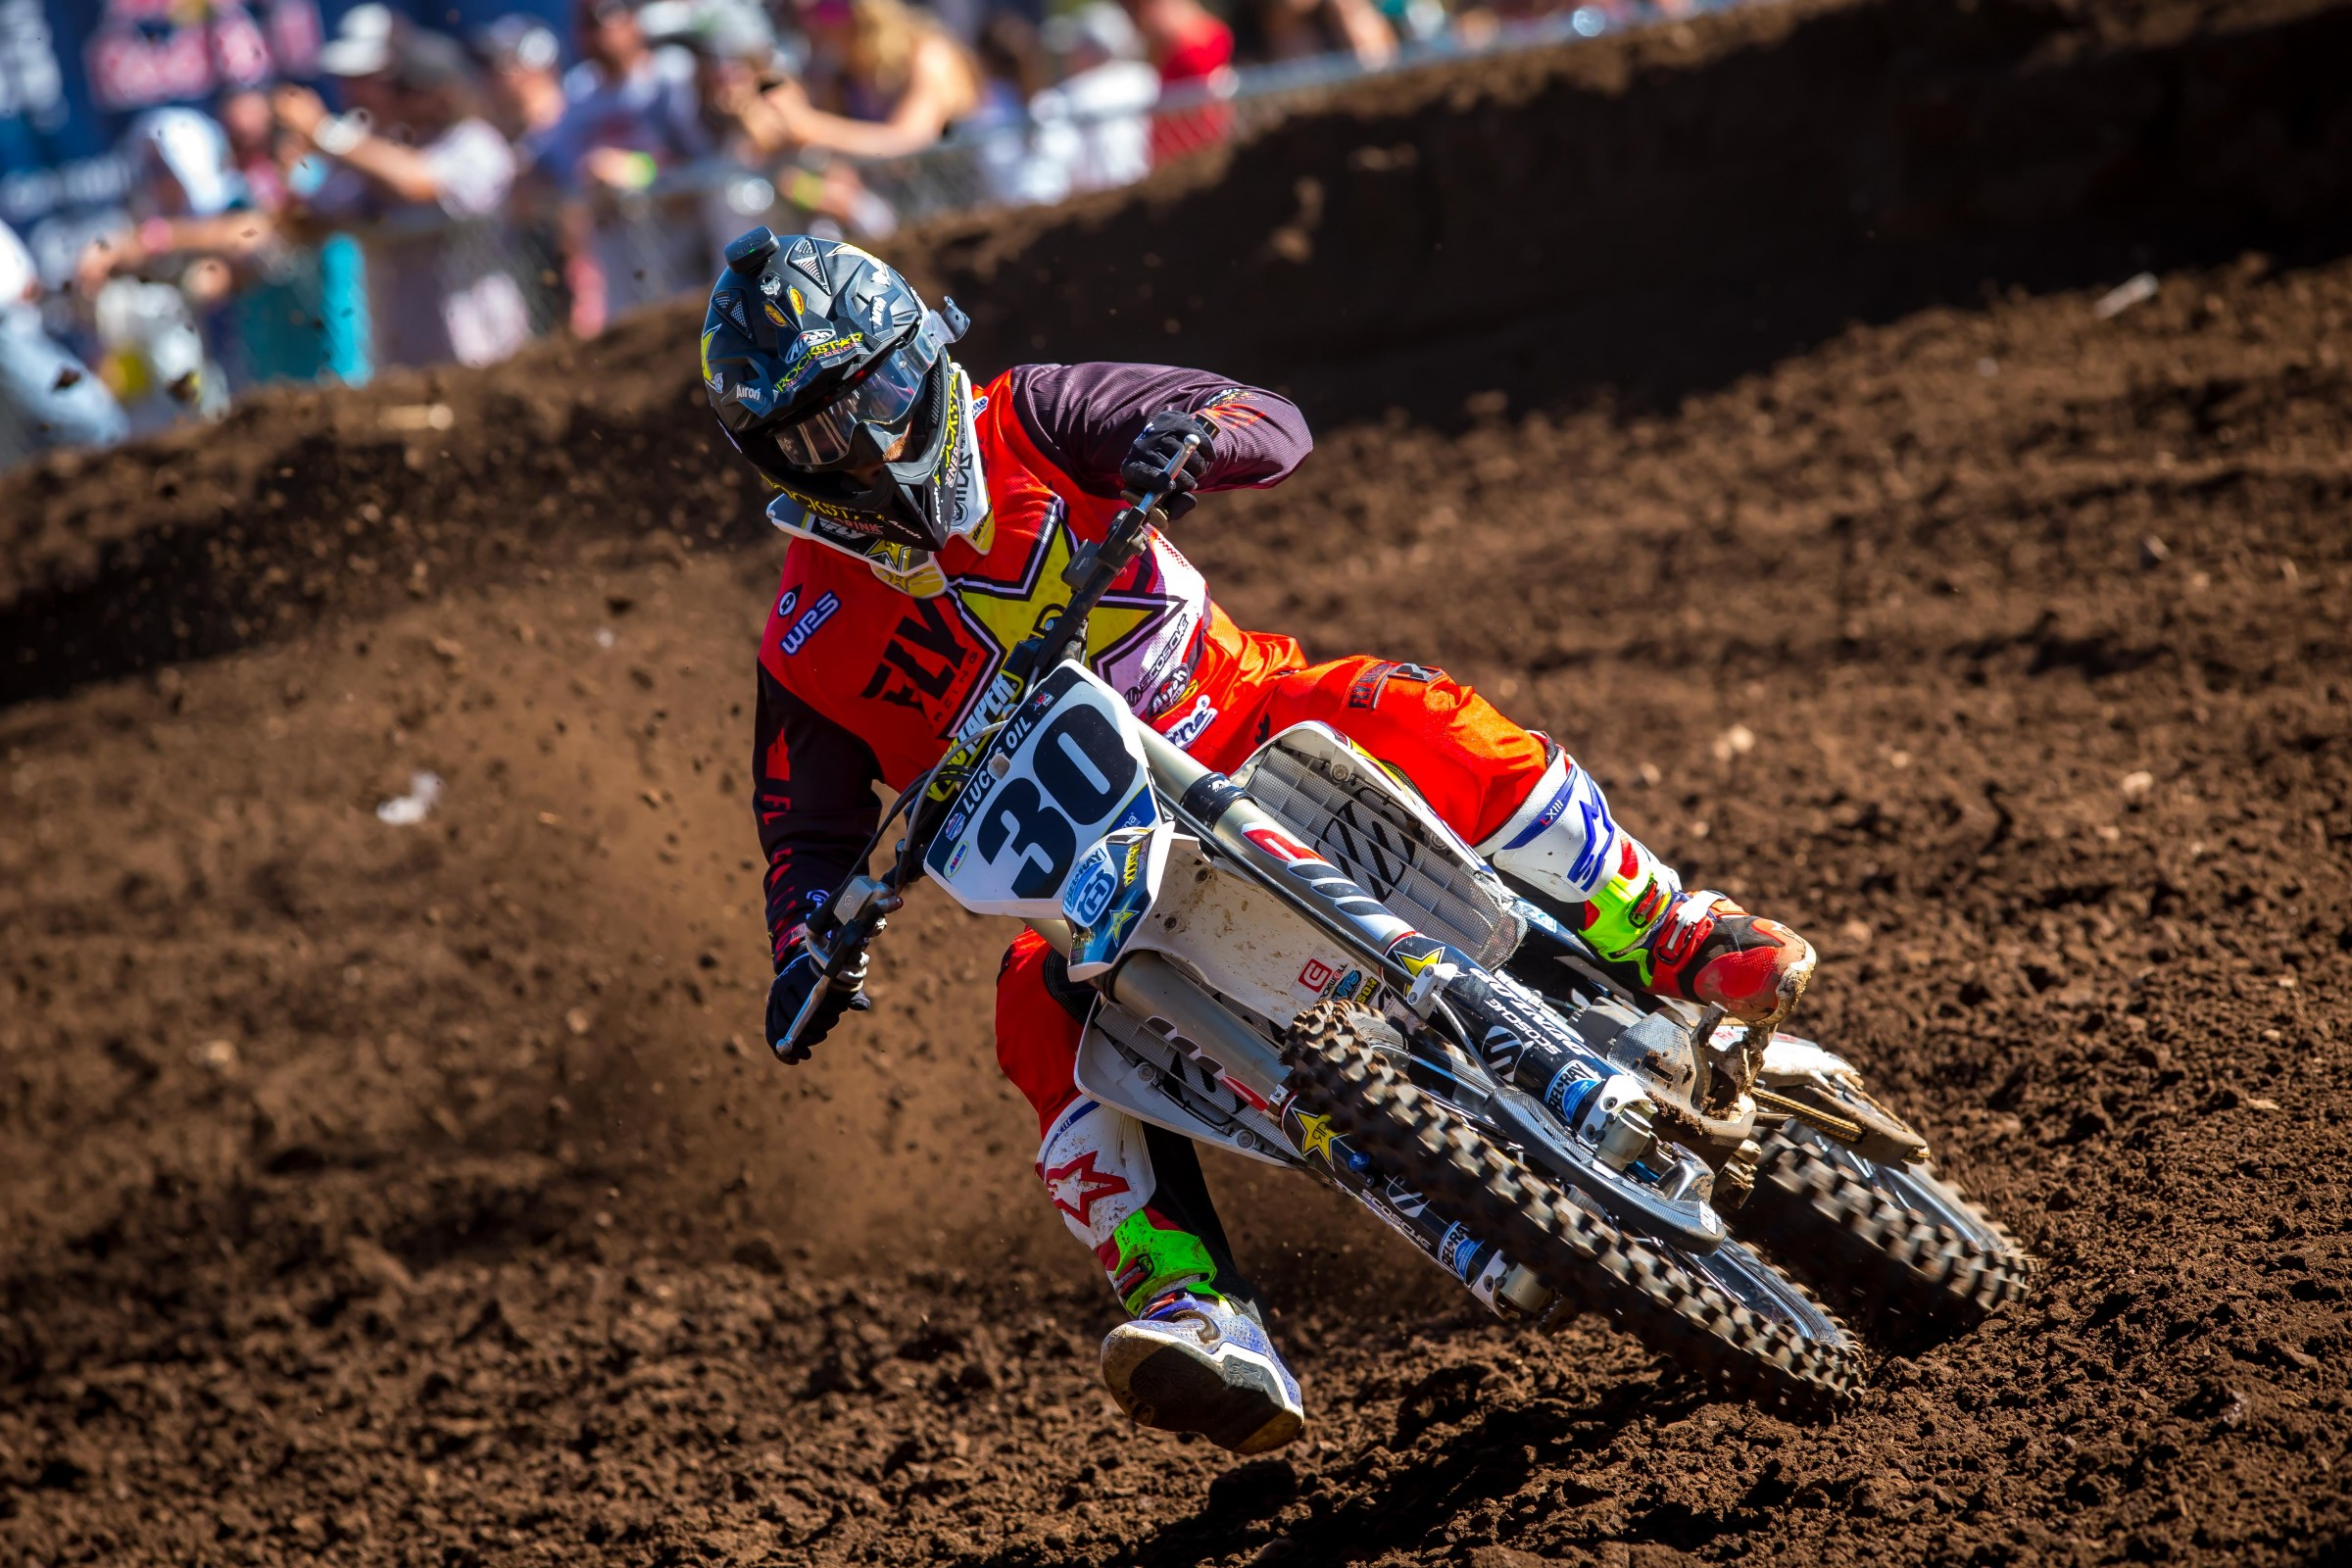 Davalos has gone 7-4-11-4-4-3 in the three rounds leading up to Unadilla.